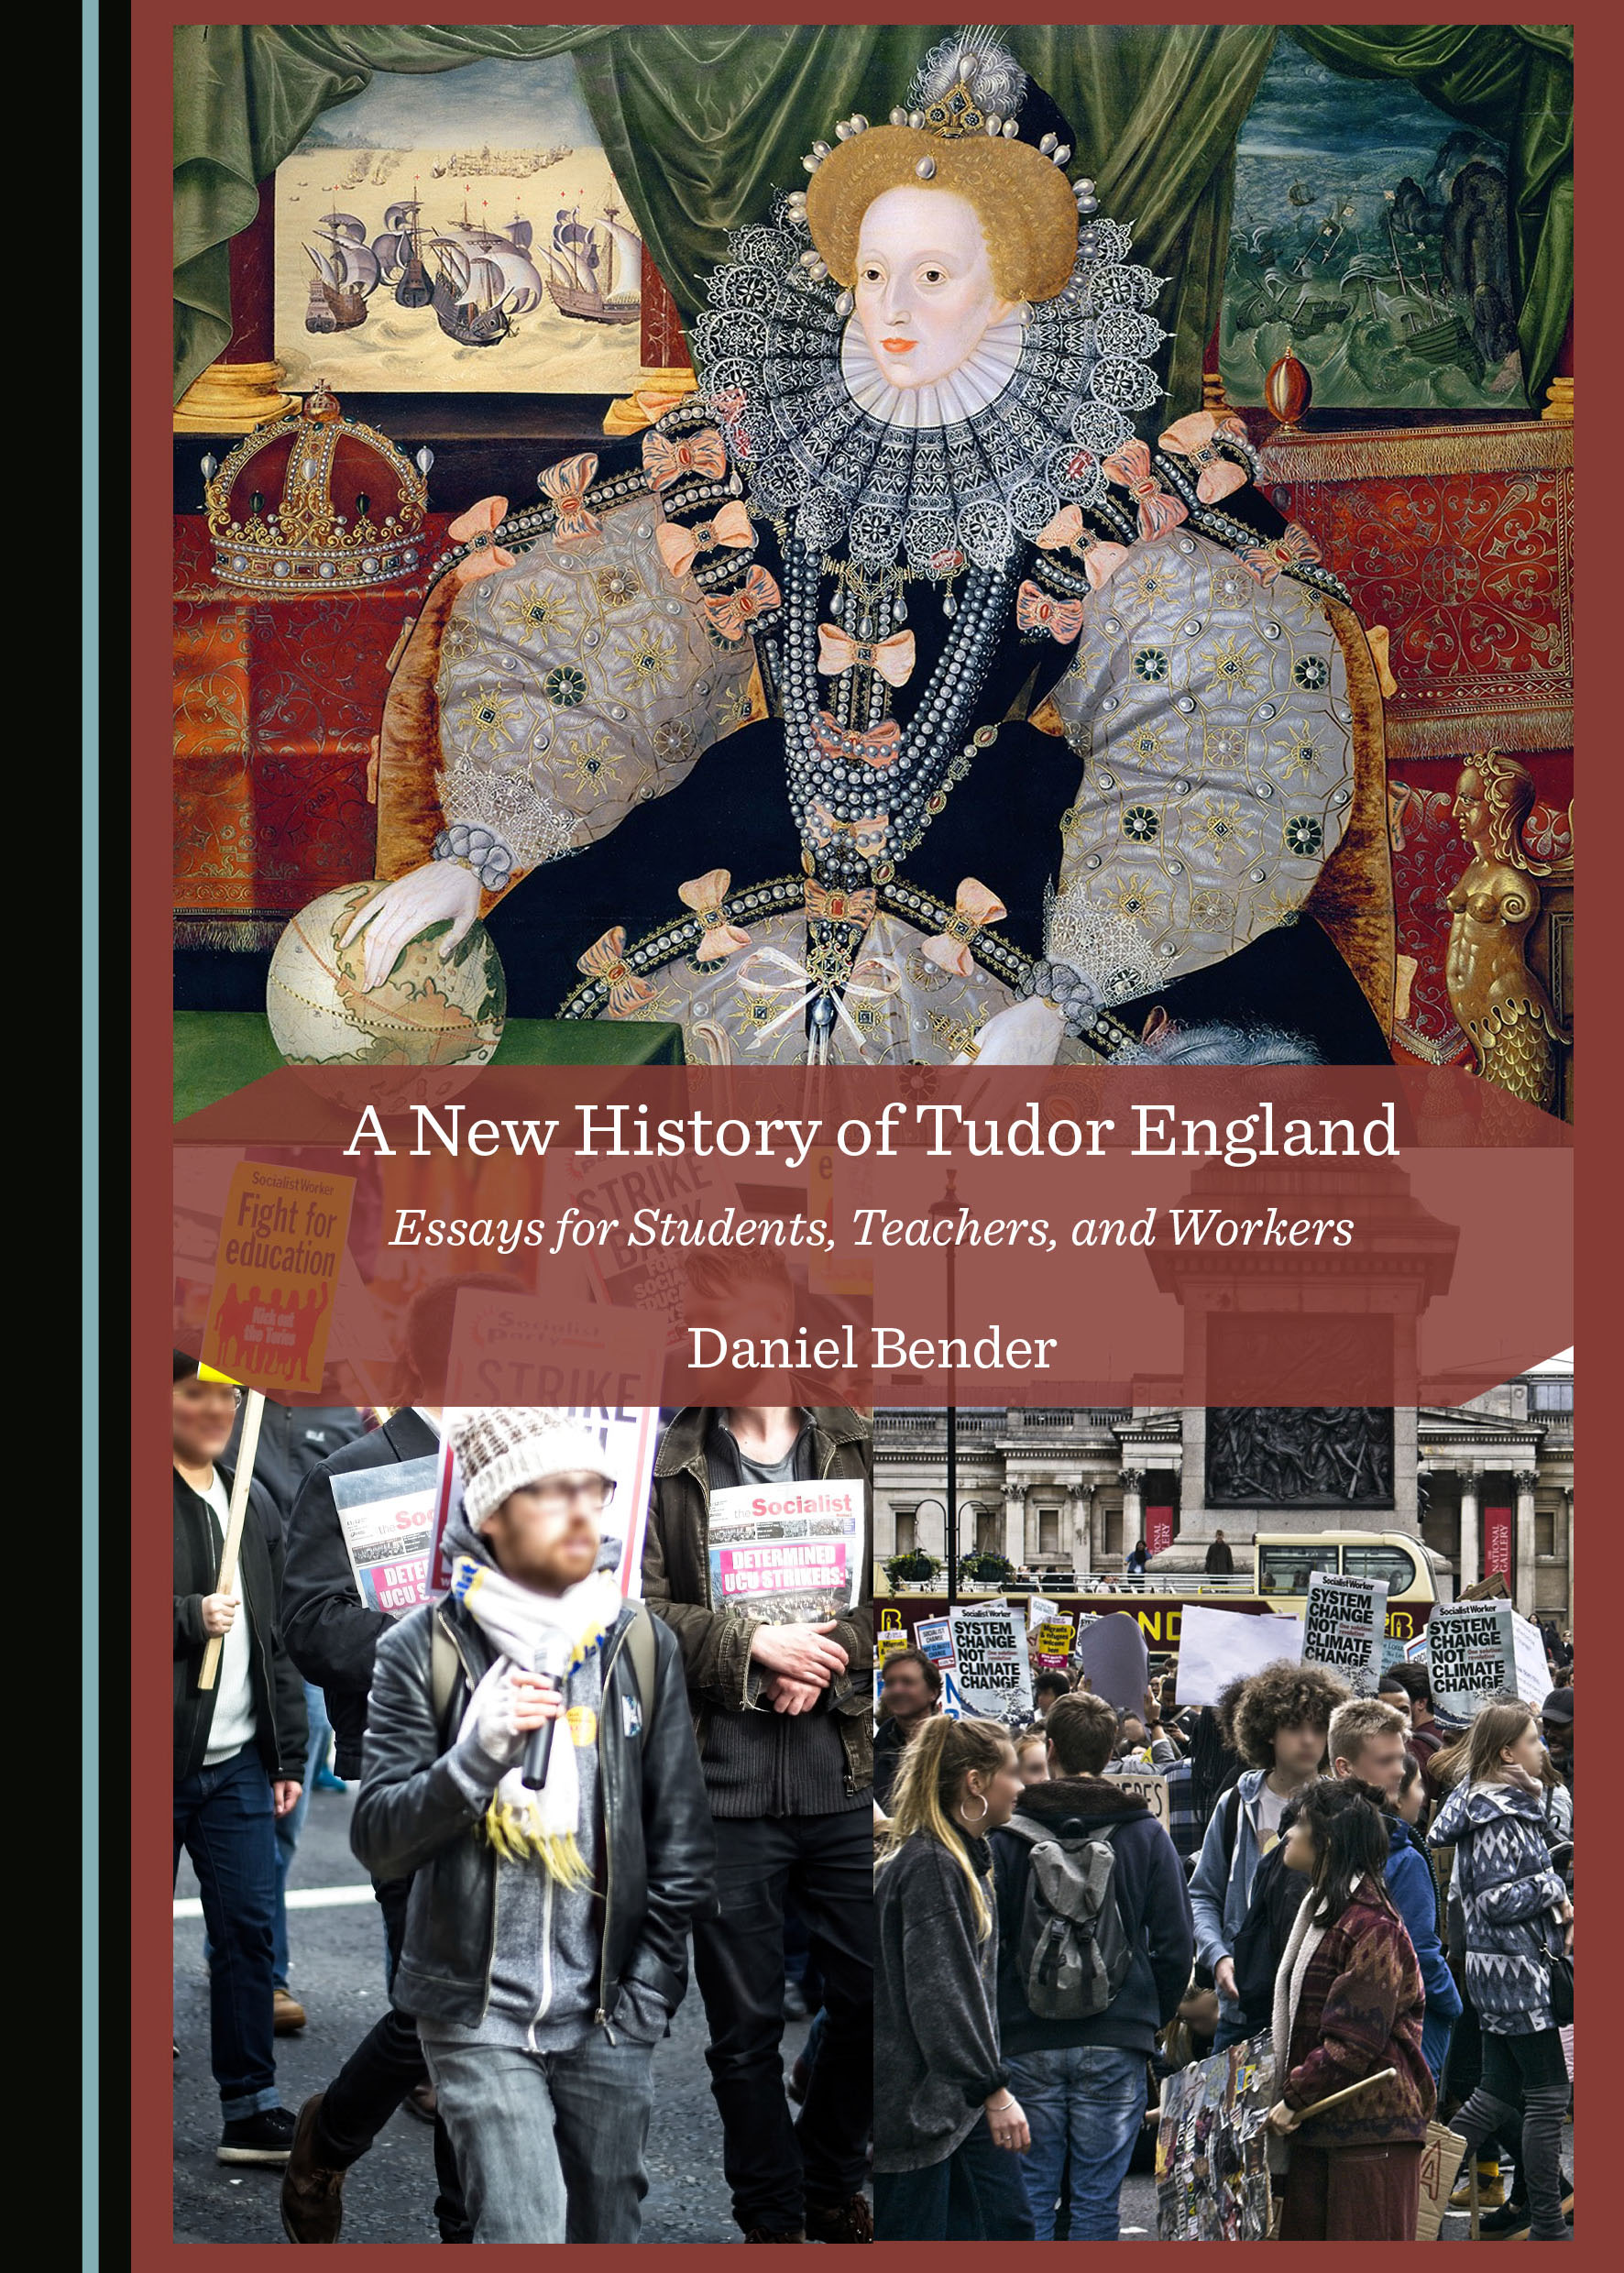 A New History of Tudor England: Essays for Students, Teachers, and Workers